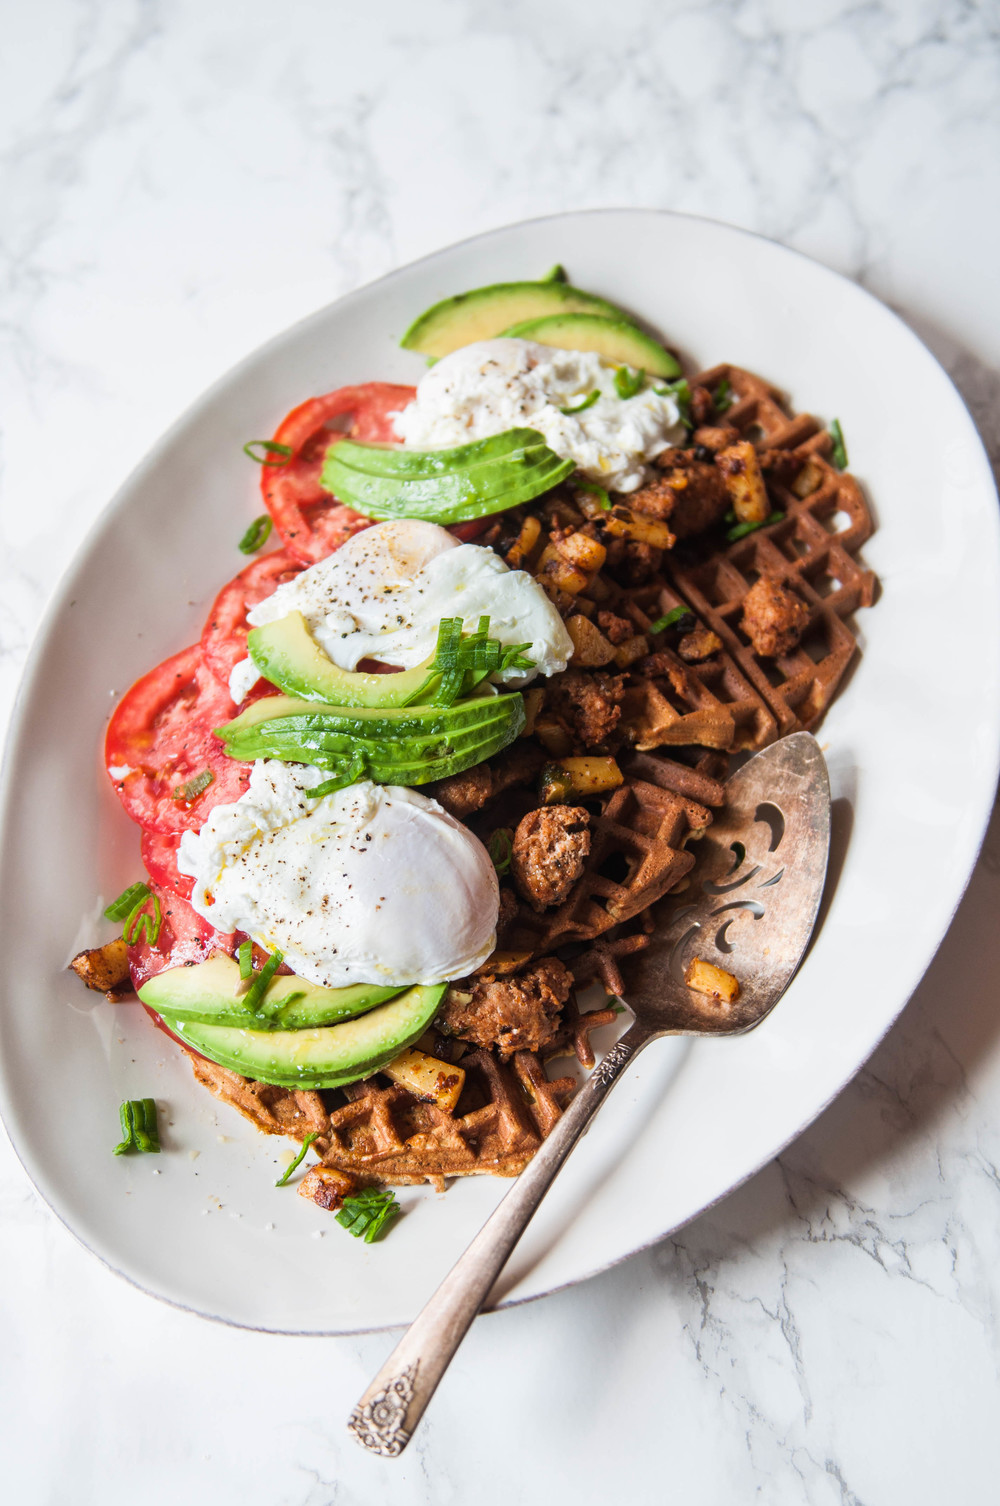 Chickpea and Einkorn Waffles with chorizo hash, poached eggs, sliced Summer tomatoes and avocado.